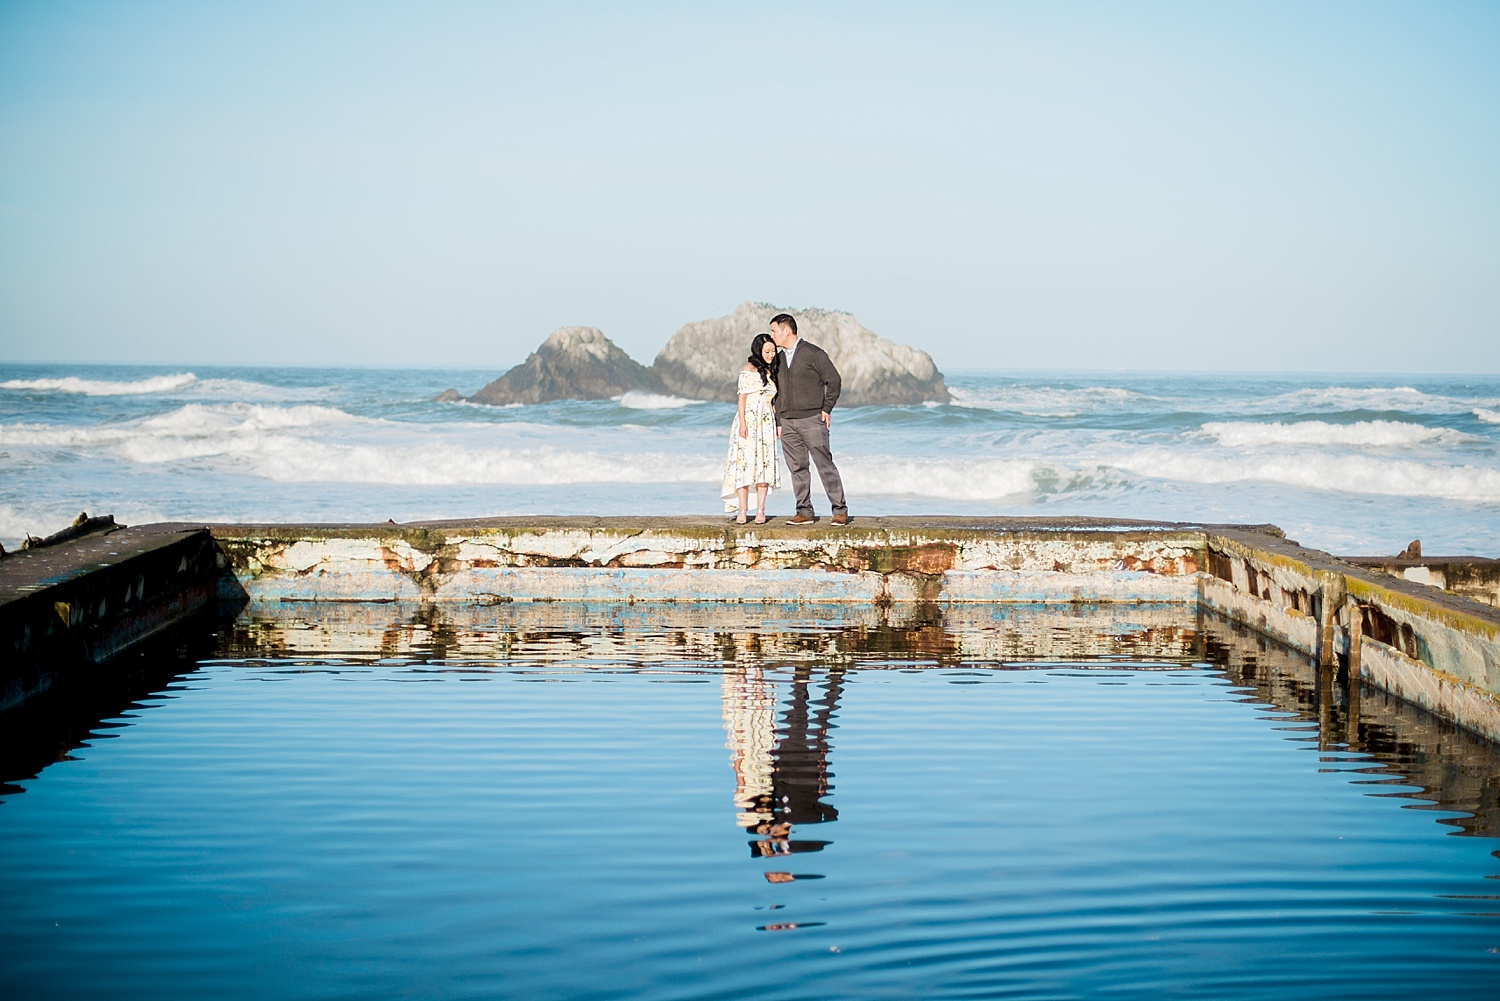 jennifer-jayn-photography-san-francisco-sutro-baths-engagement-session_0012.jpg